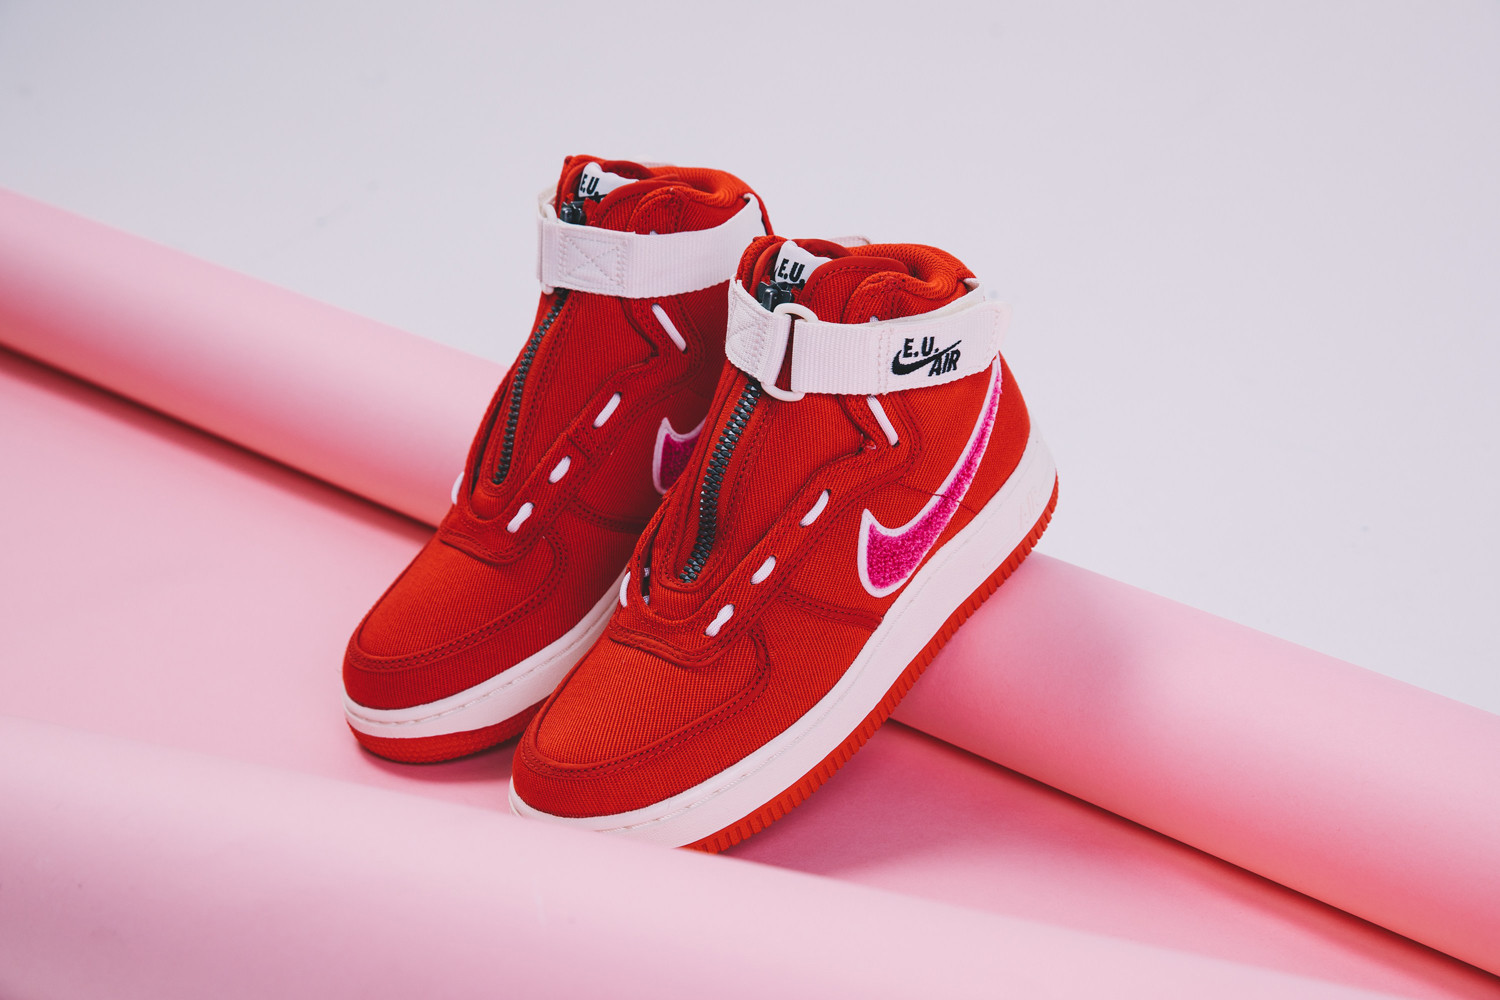 Clothing brand Emotionally Unavailable has teamed up with Nike for a Valentines day rendition of the Air Force 1 High.  The Emotionally Unavailable x Nike Air Force 1 High is available now via very select retailers.